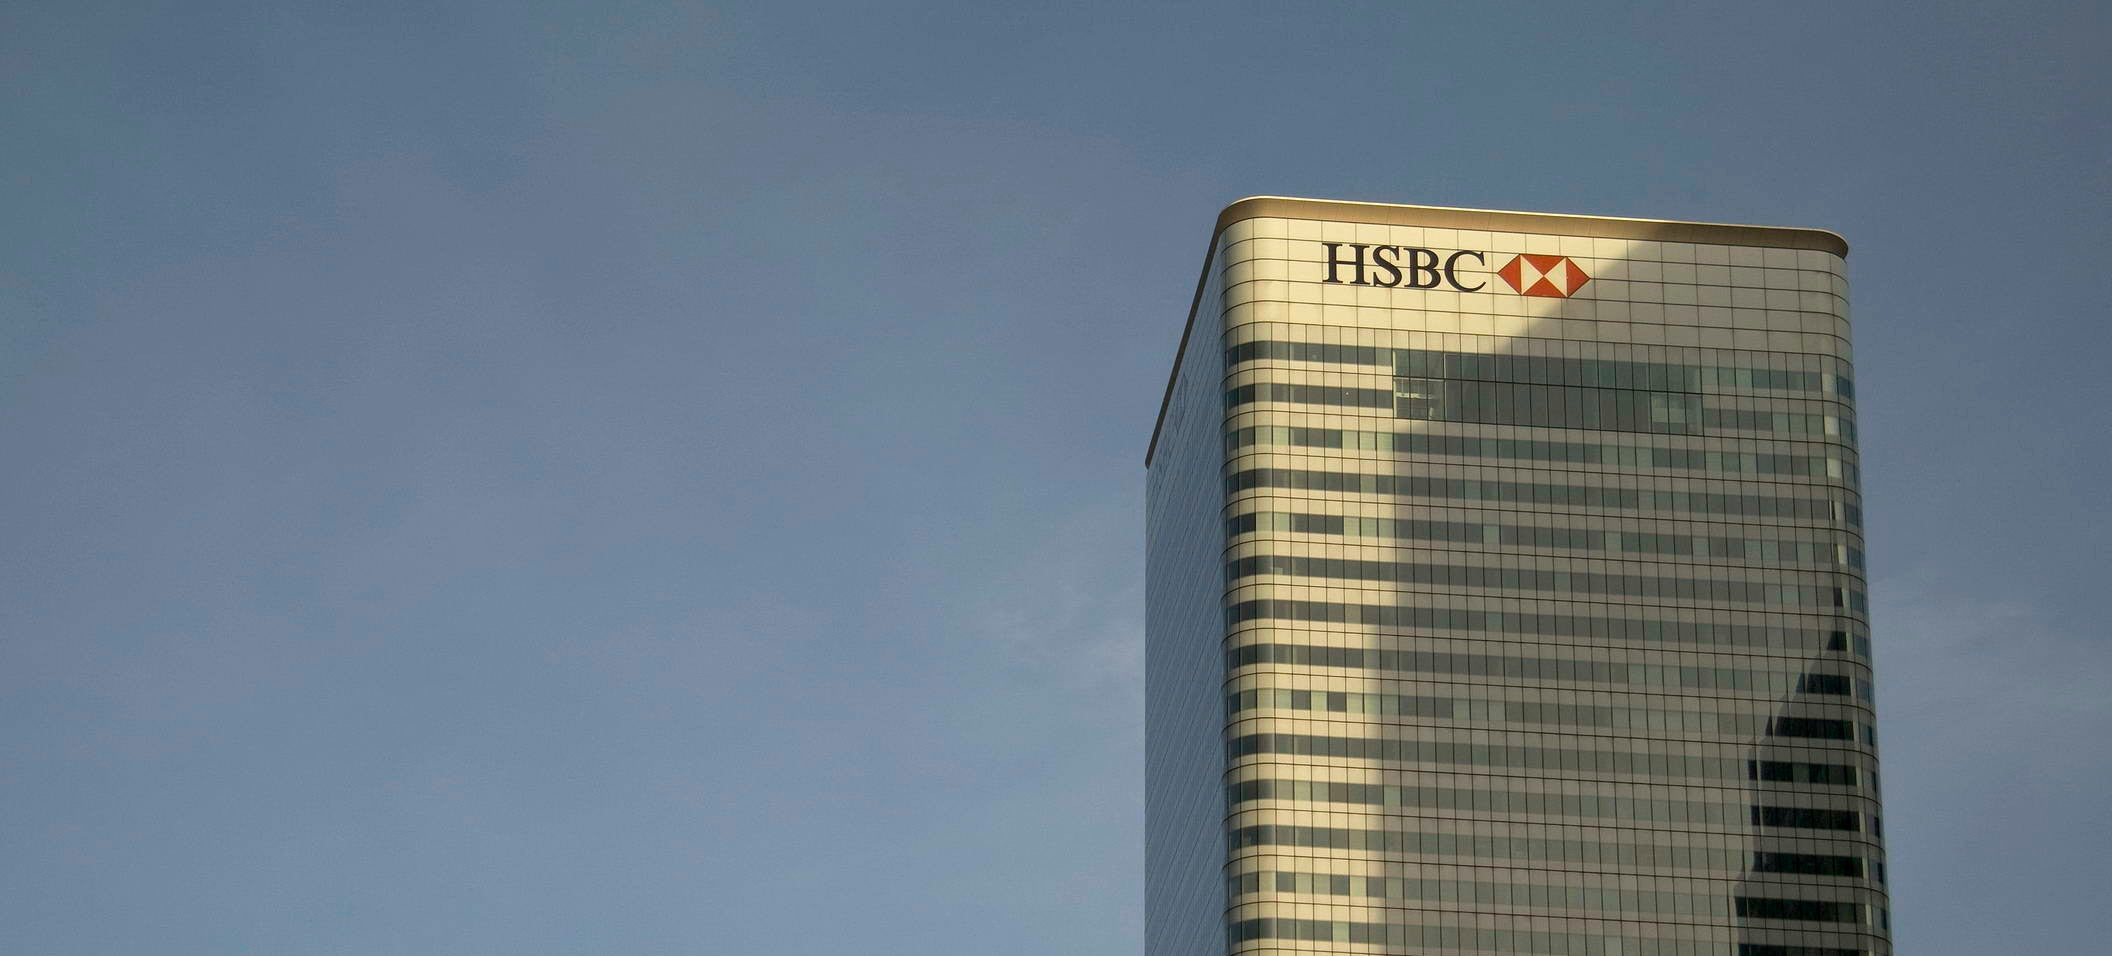 Leaked Data From 30,000 Swiss Bank Accounts Reveals Mass Tax Avoidance